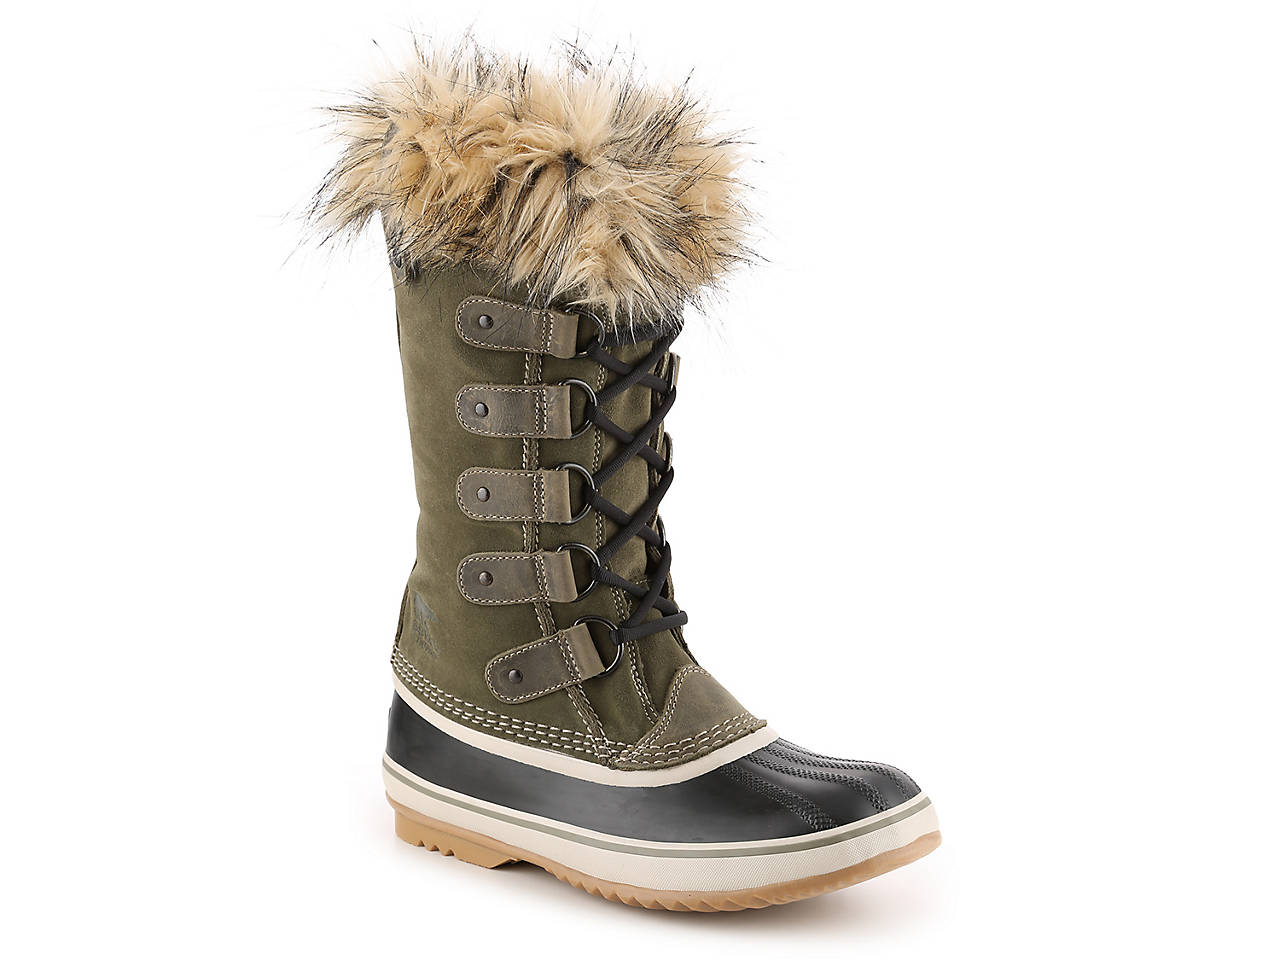 061bc427bdfe Sorel Joan of Arctic Snow Boot Women s Shoes